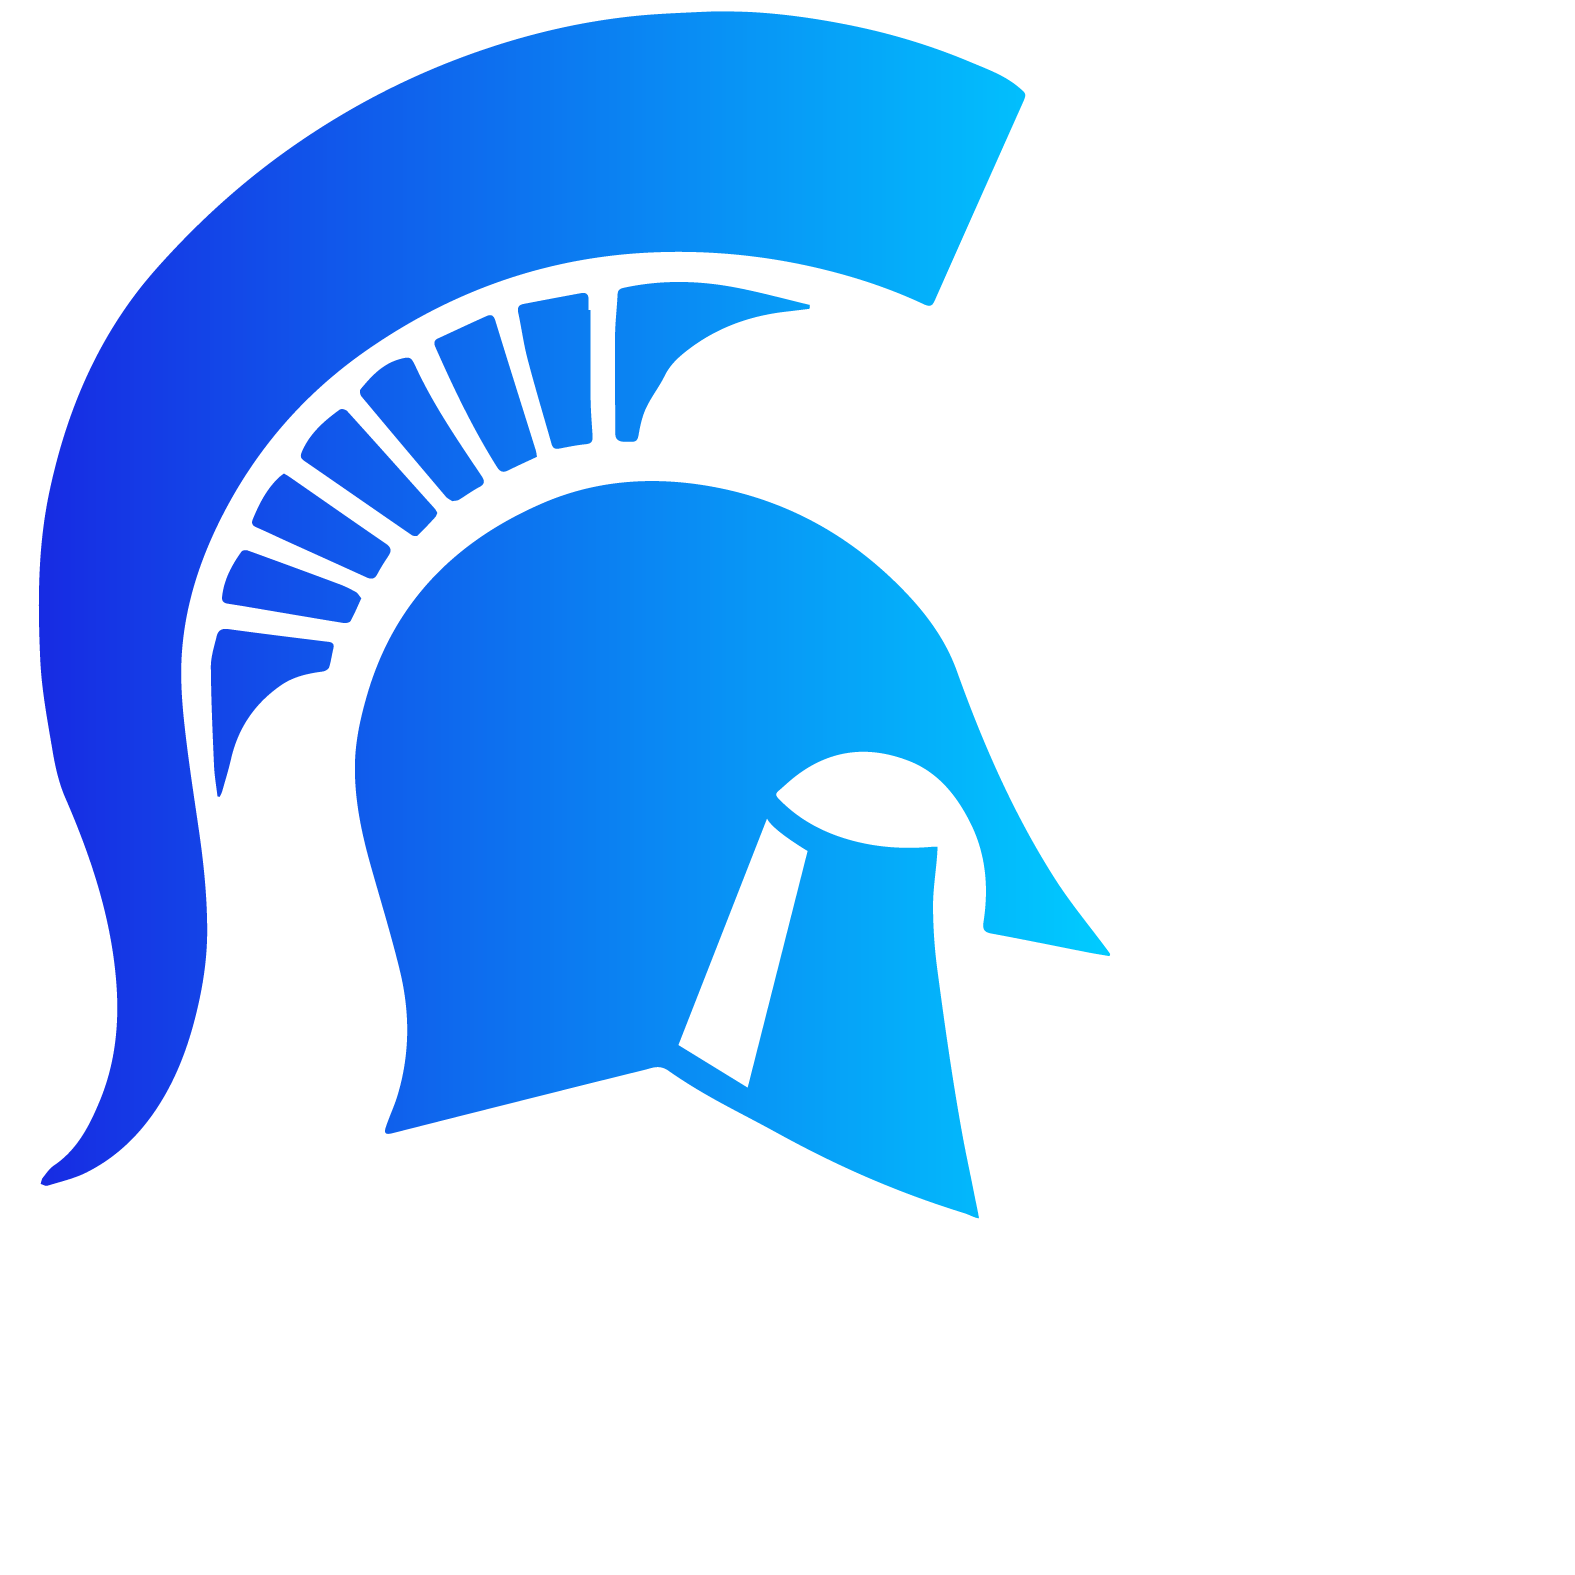 Sparta consulting group we. Spartan clipart wins